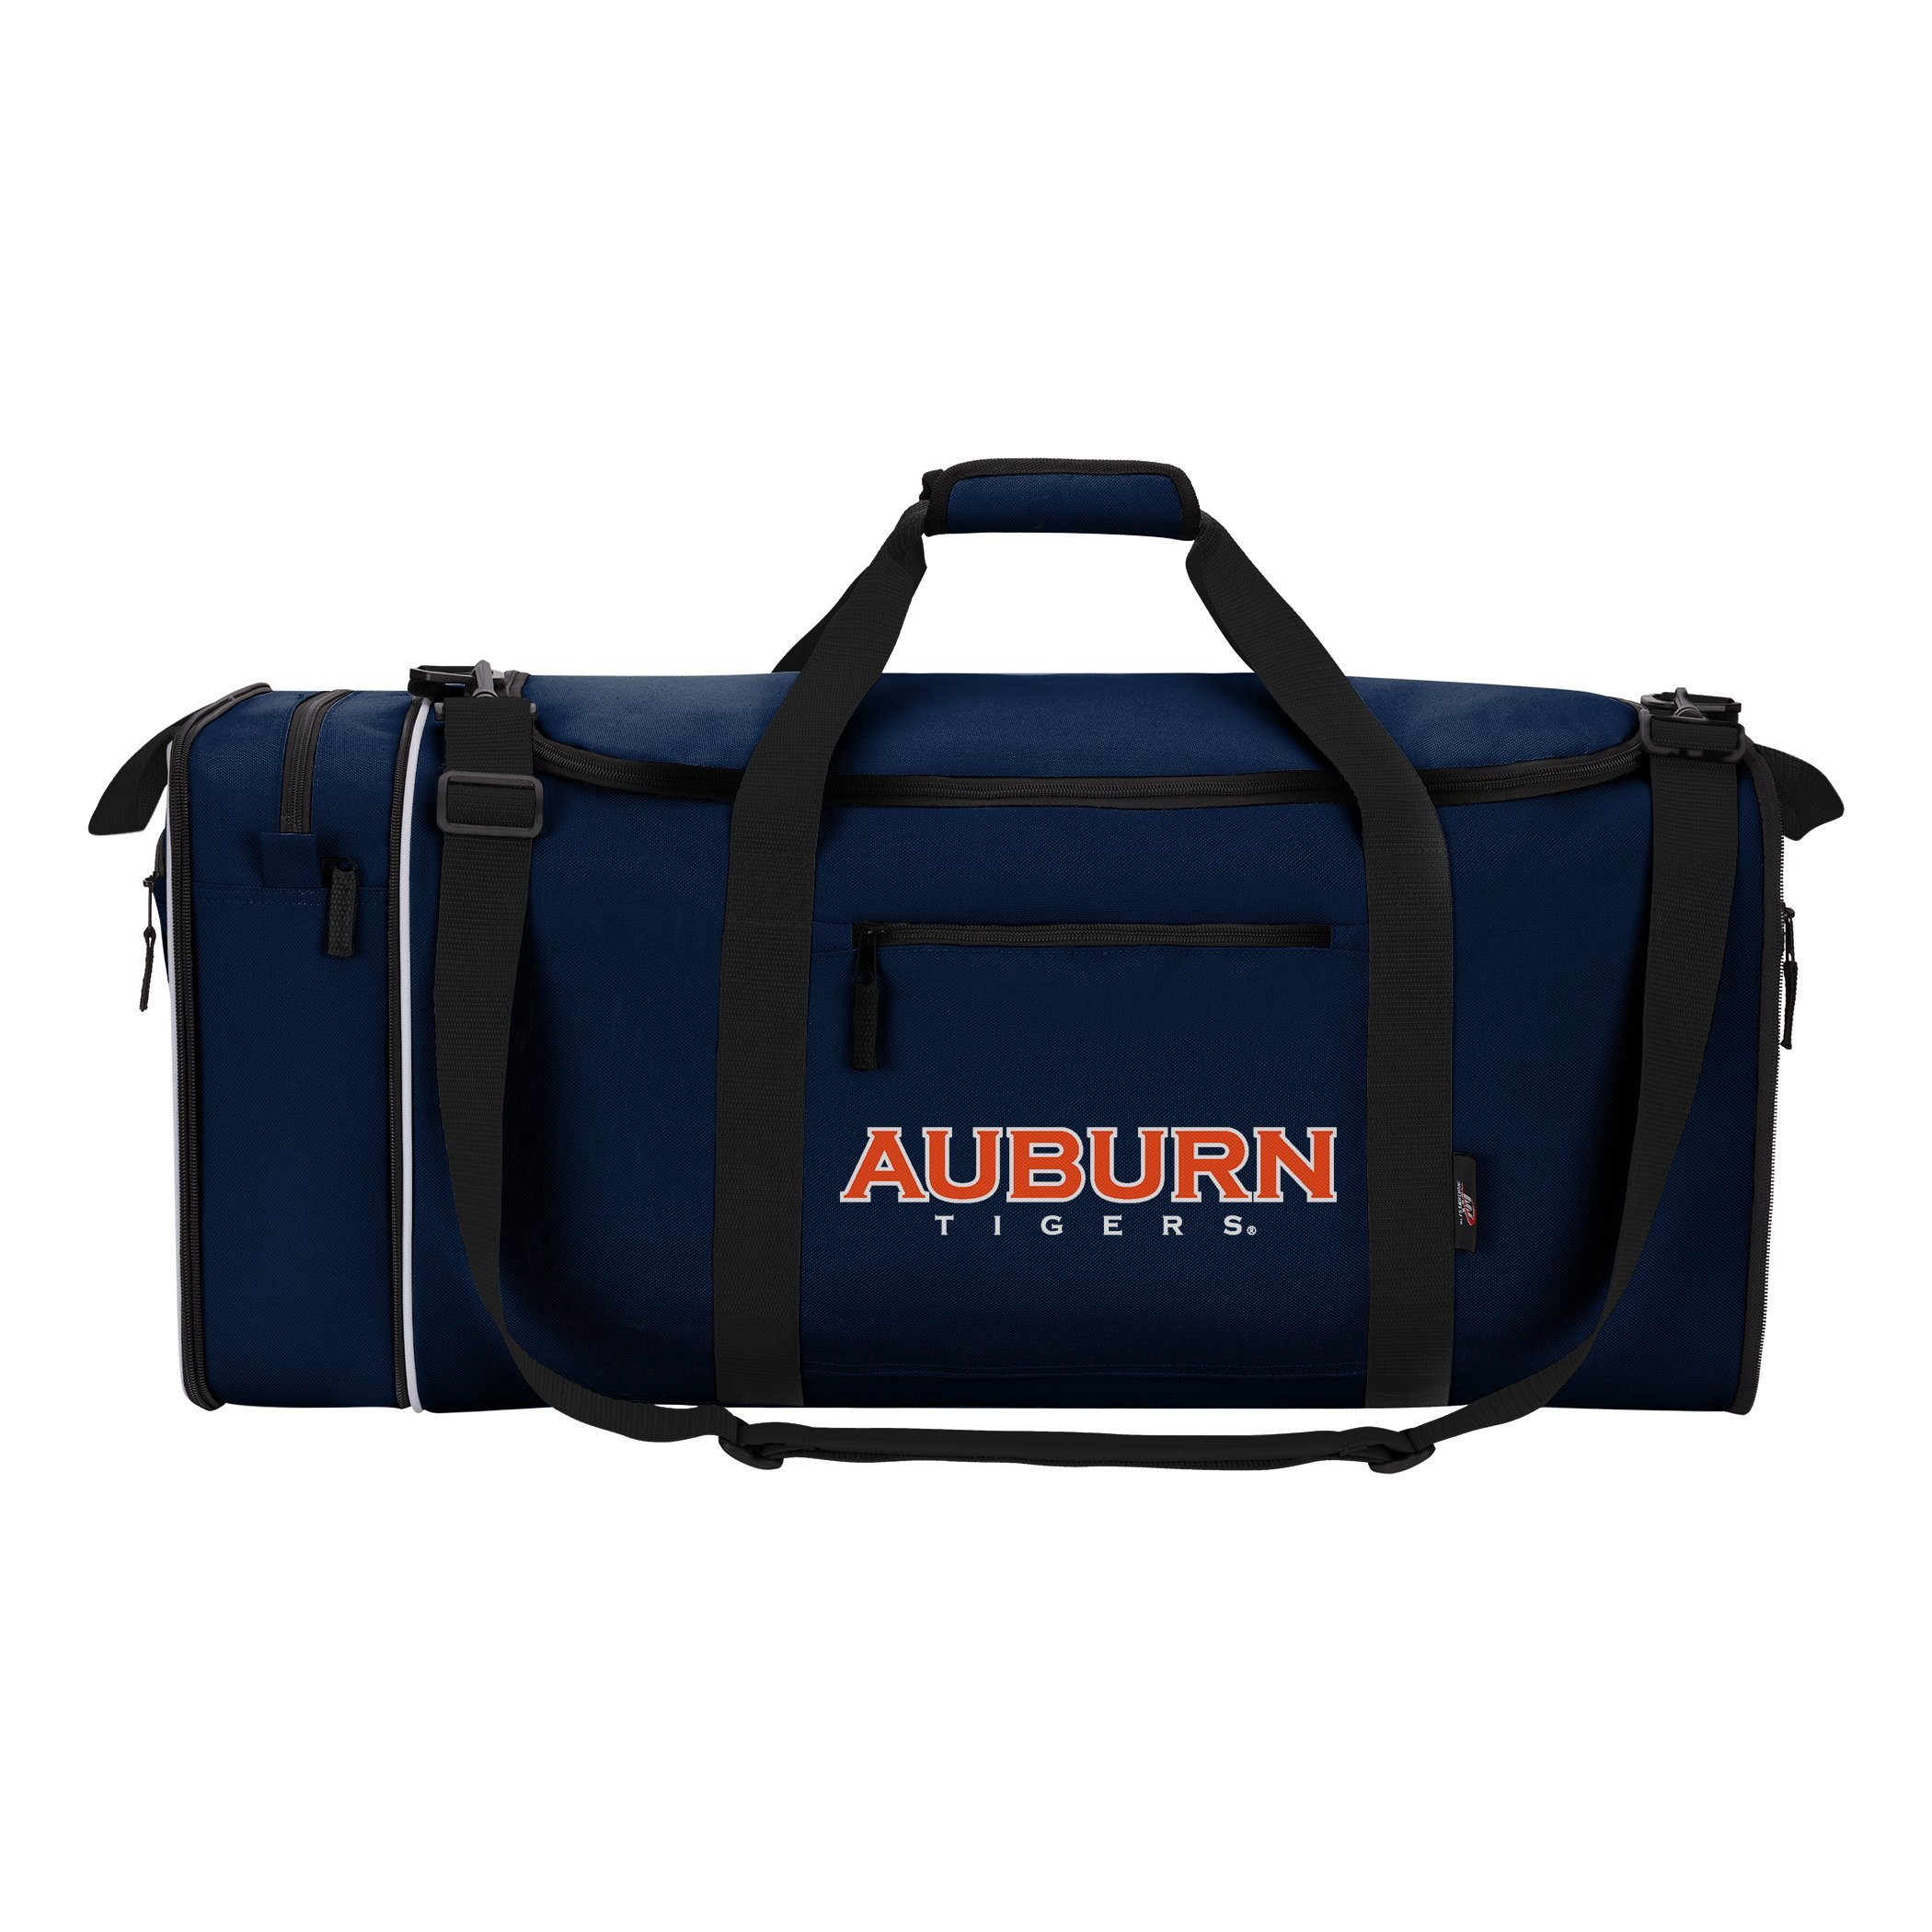 Officially Licensed NCAA Auburn Tigers Steal Duffel Bag by The Northwest Company (Image #1)